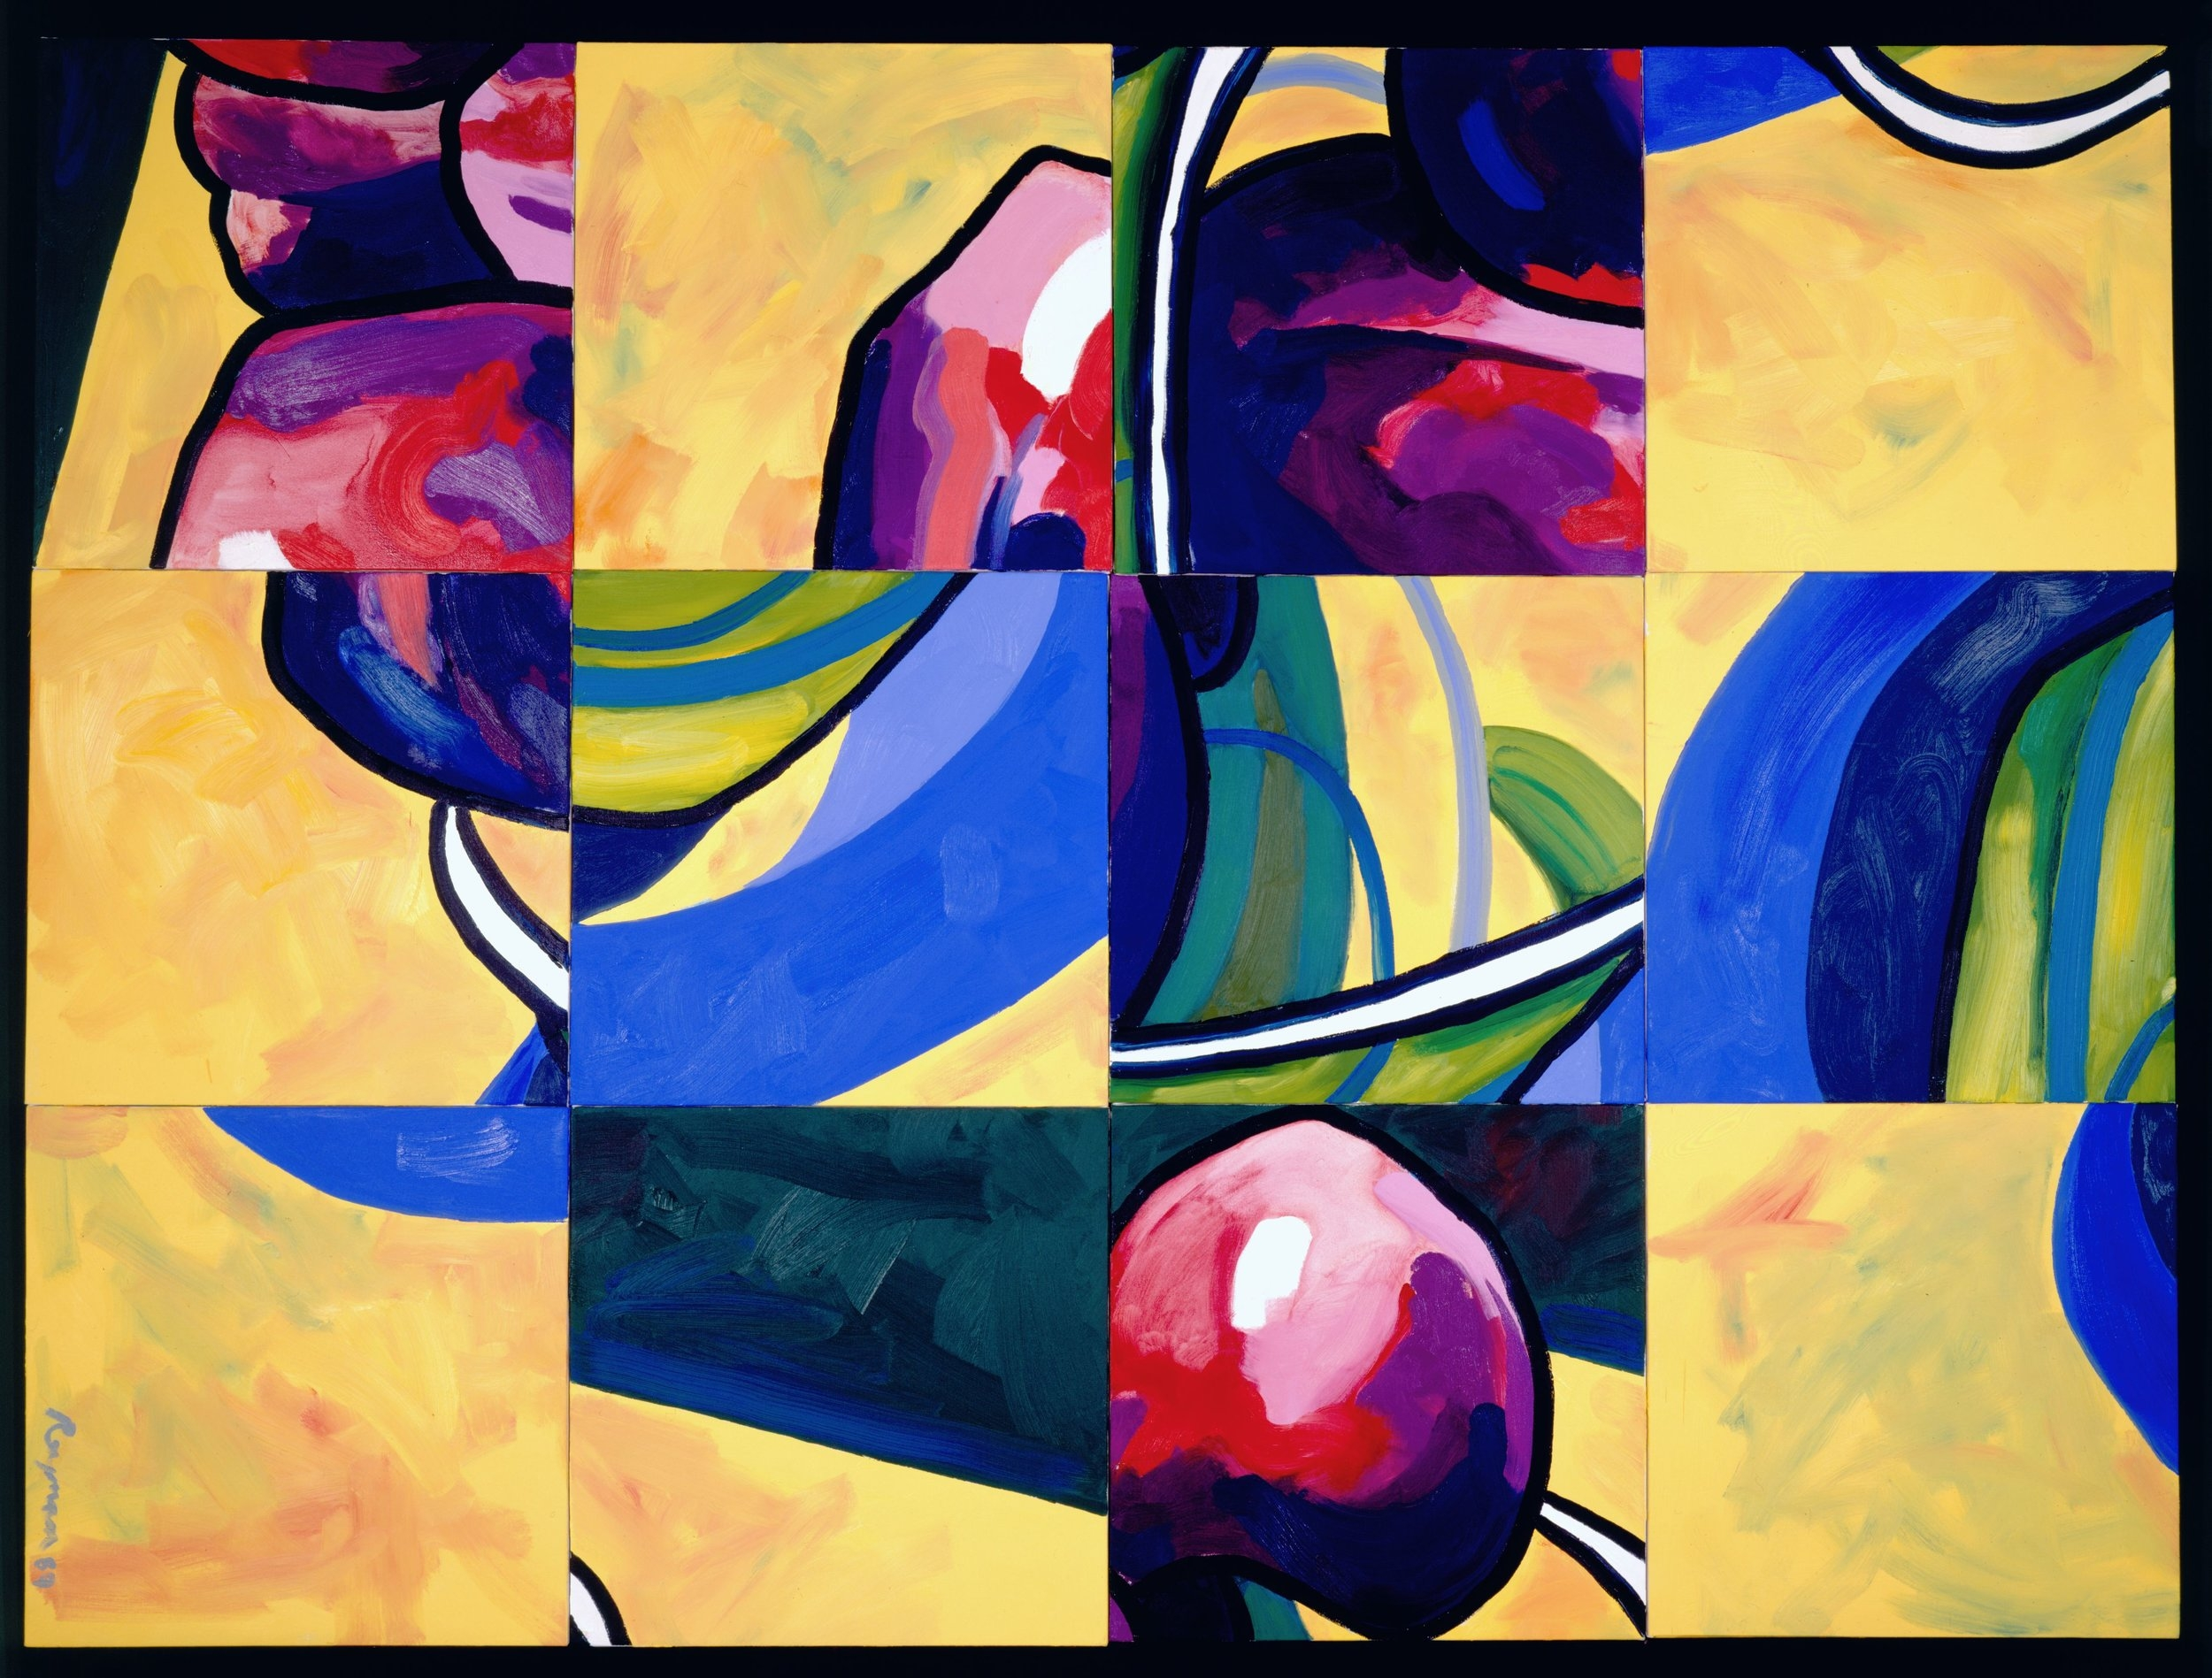 Some Plums • 6 x 8 feet • Oil on Canvases • SOLD